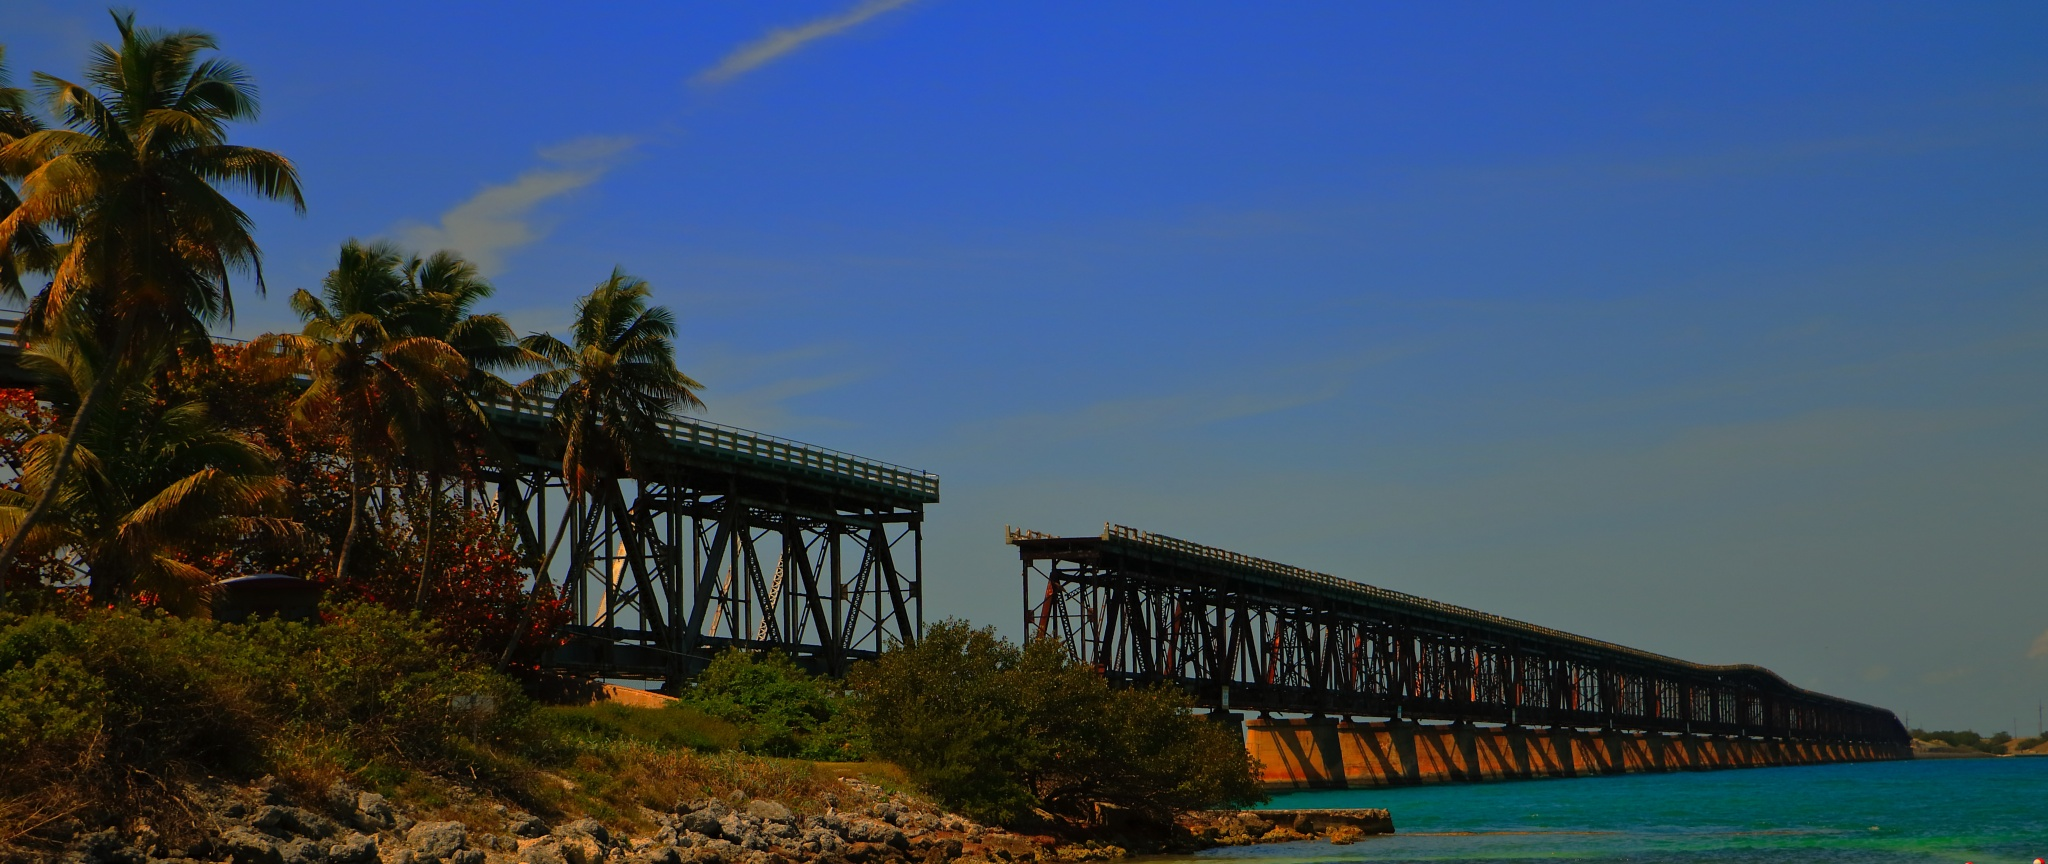 The Bahia Honda Bridge by Mark Drais